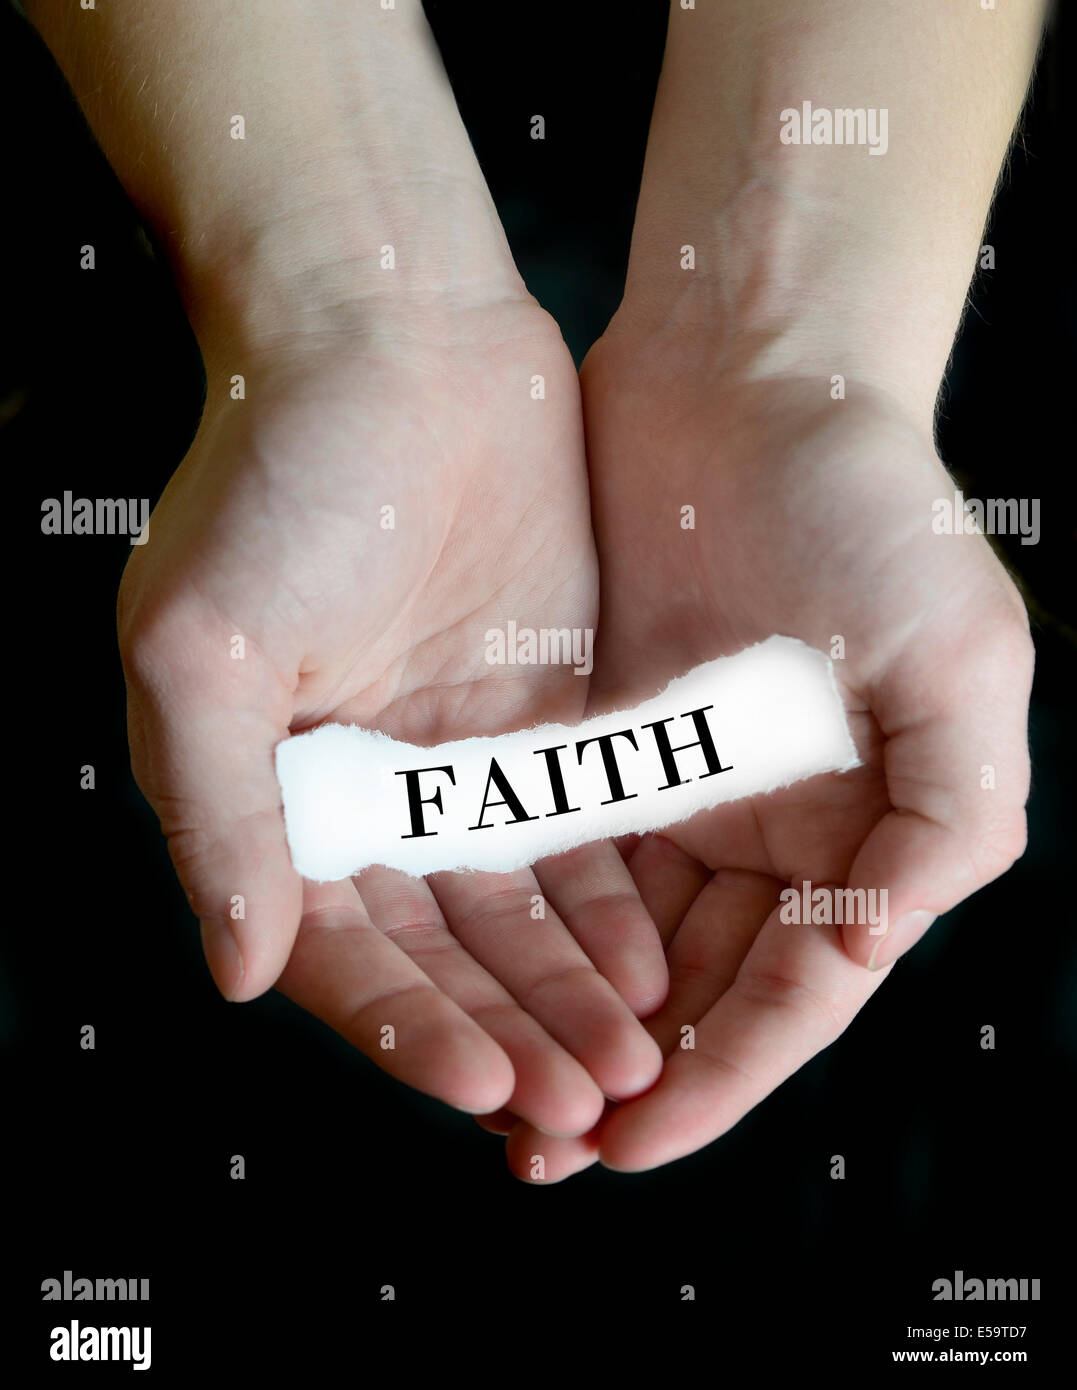 Person hands holding cupping paper message for Faith - Stock Image